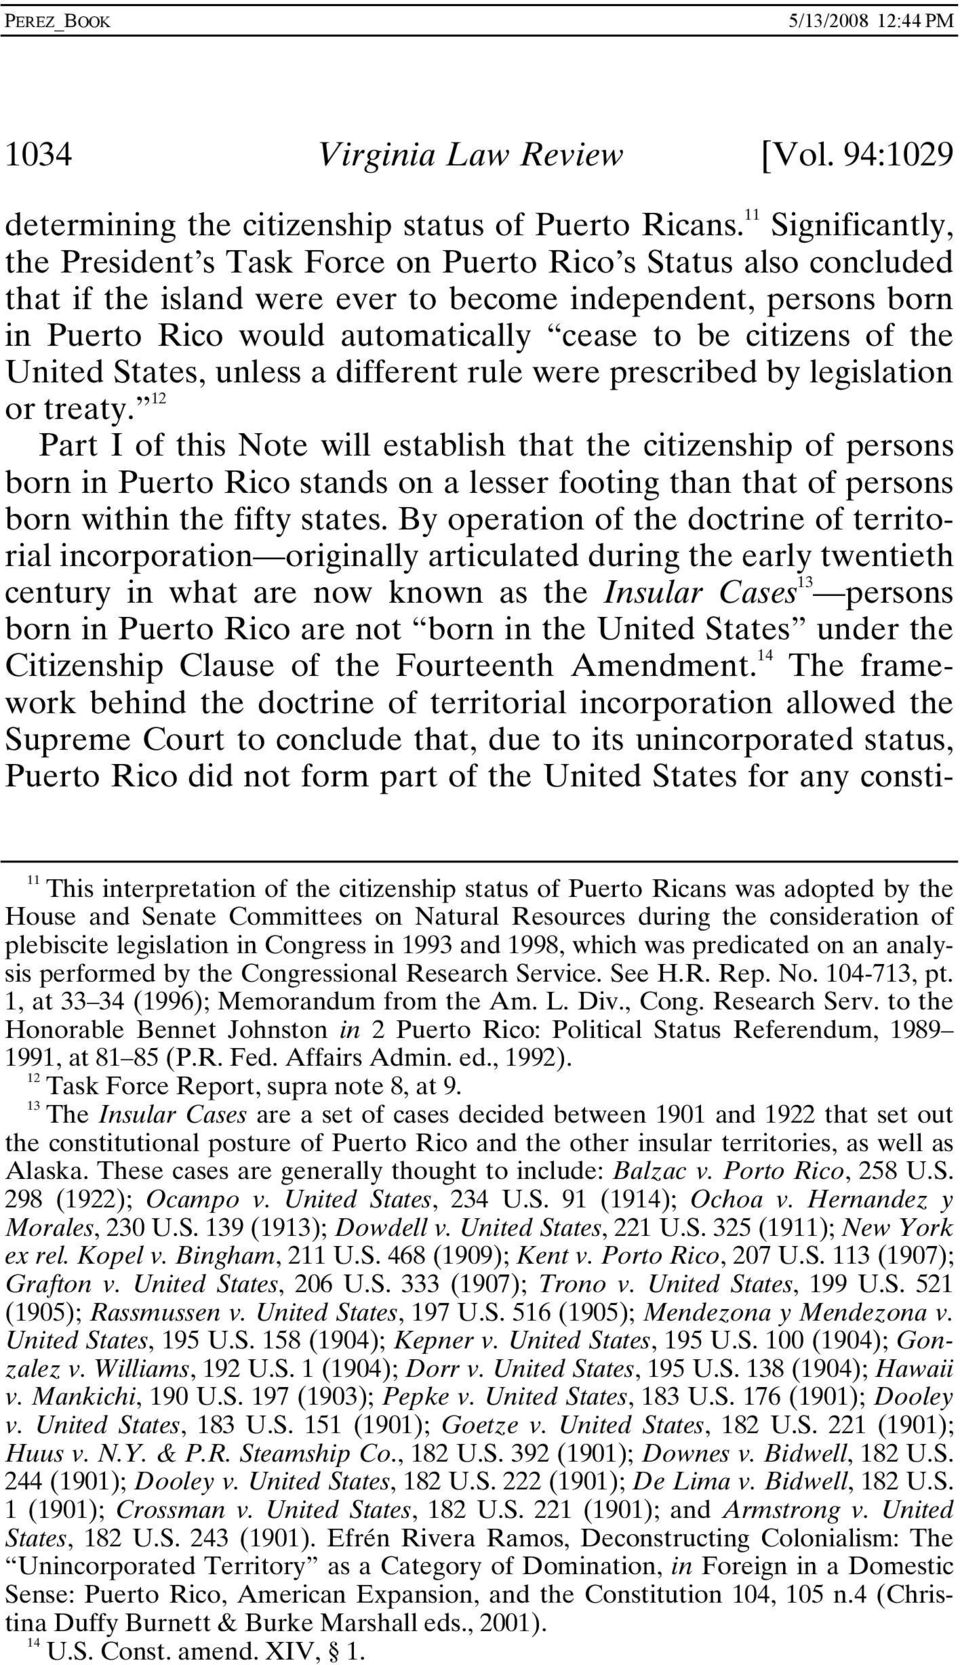 citizens of the United States, unless a different rule were prescribed by legislation or treaty.